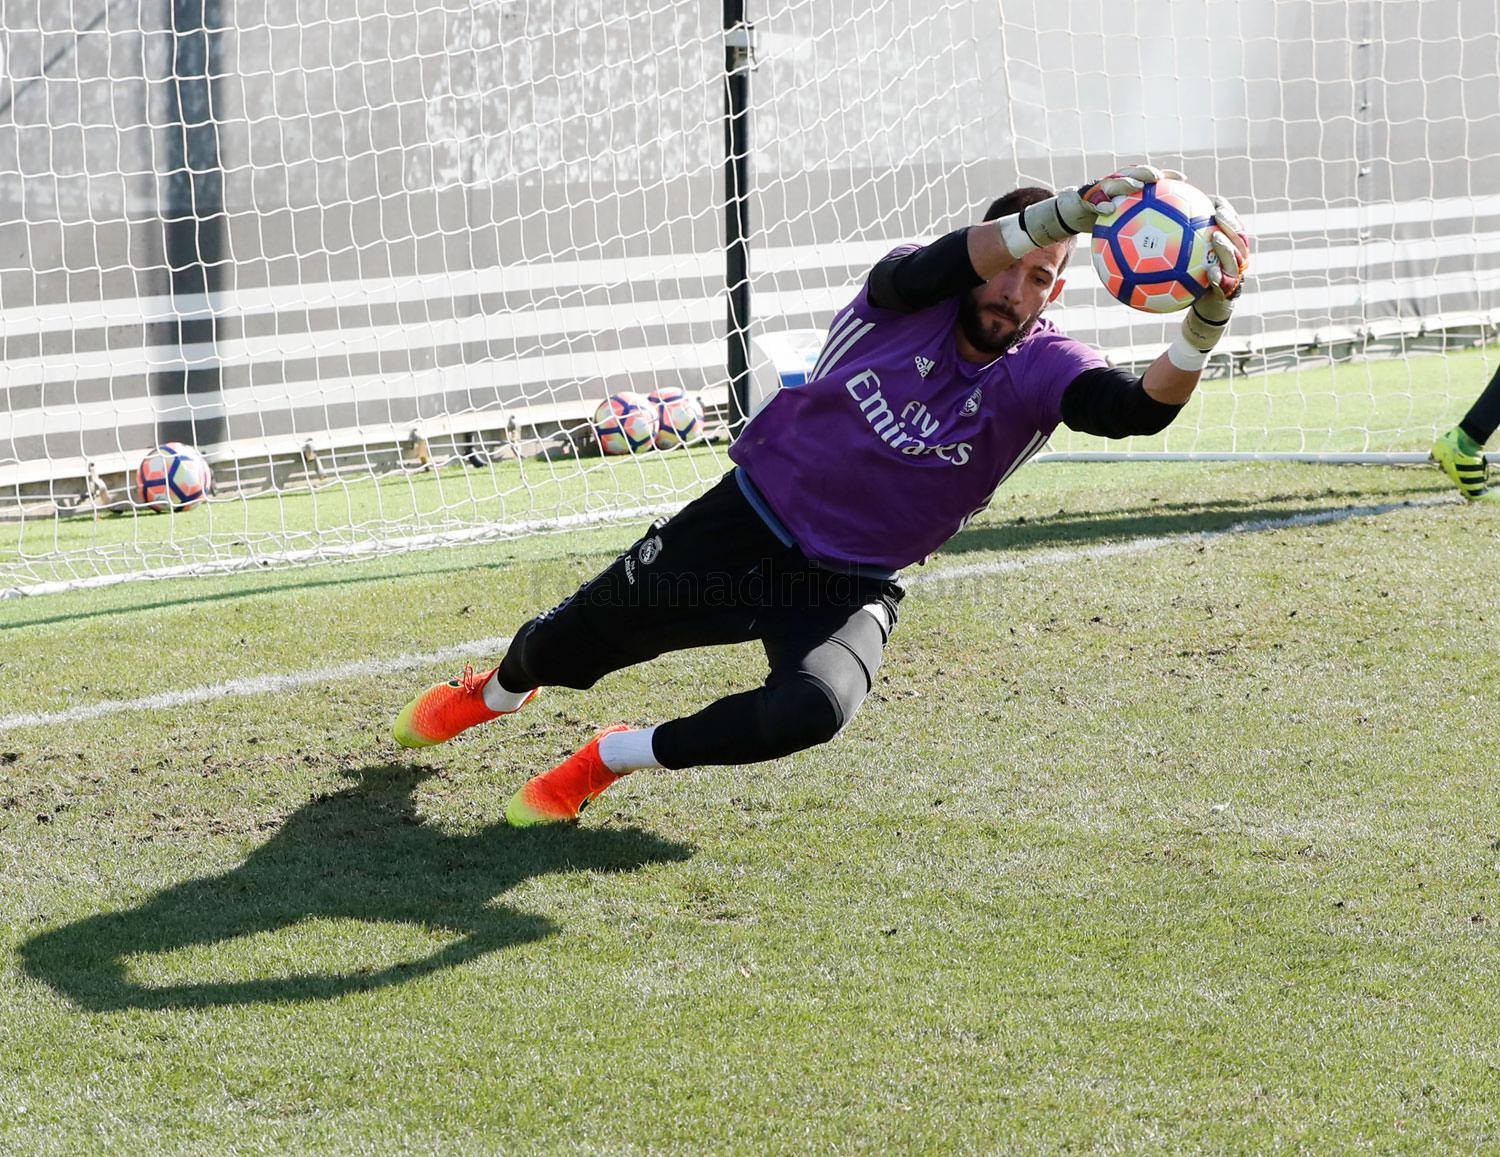 Real Madrid - Entrenamiento del Real Madrid - 01-09-2016